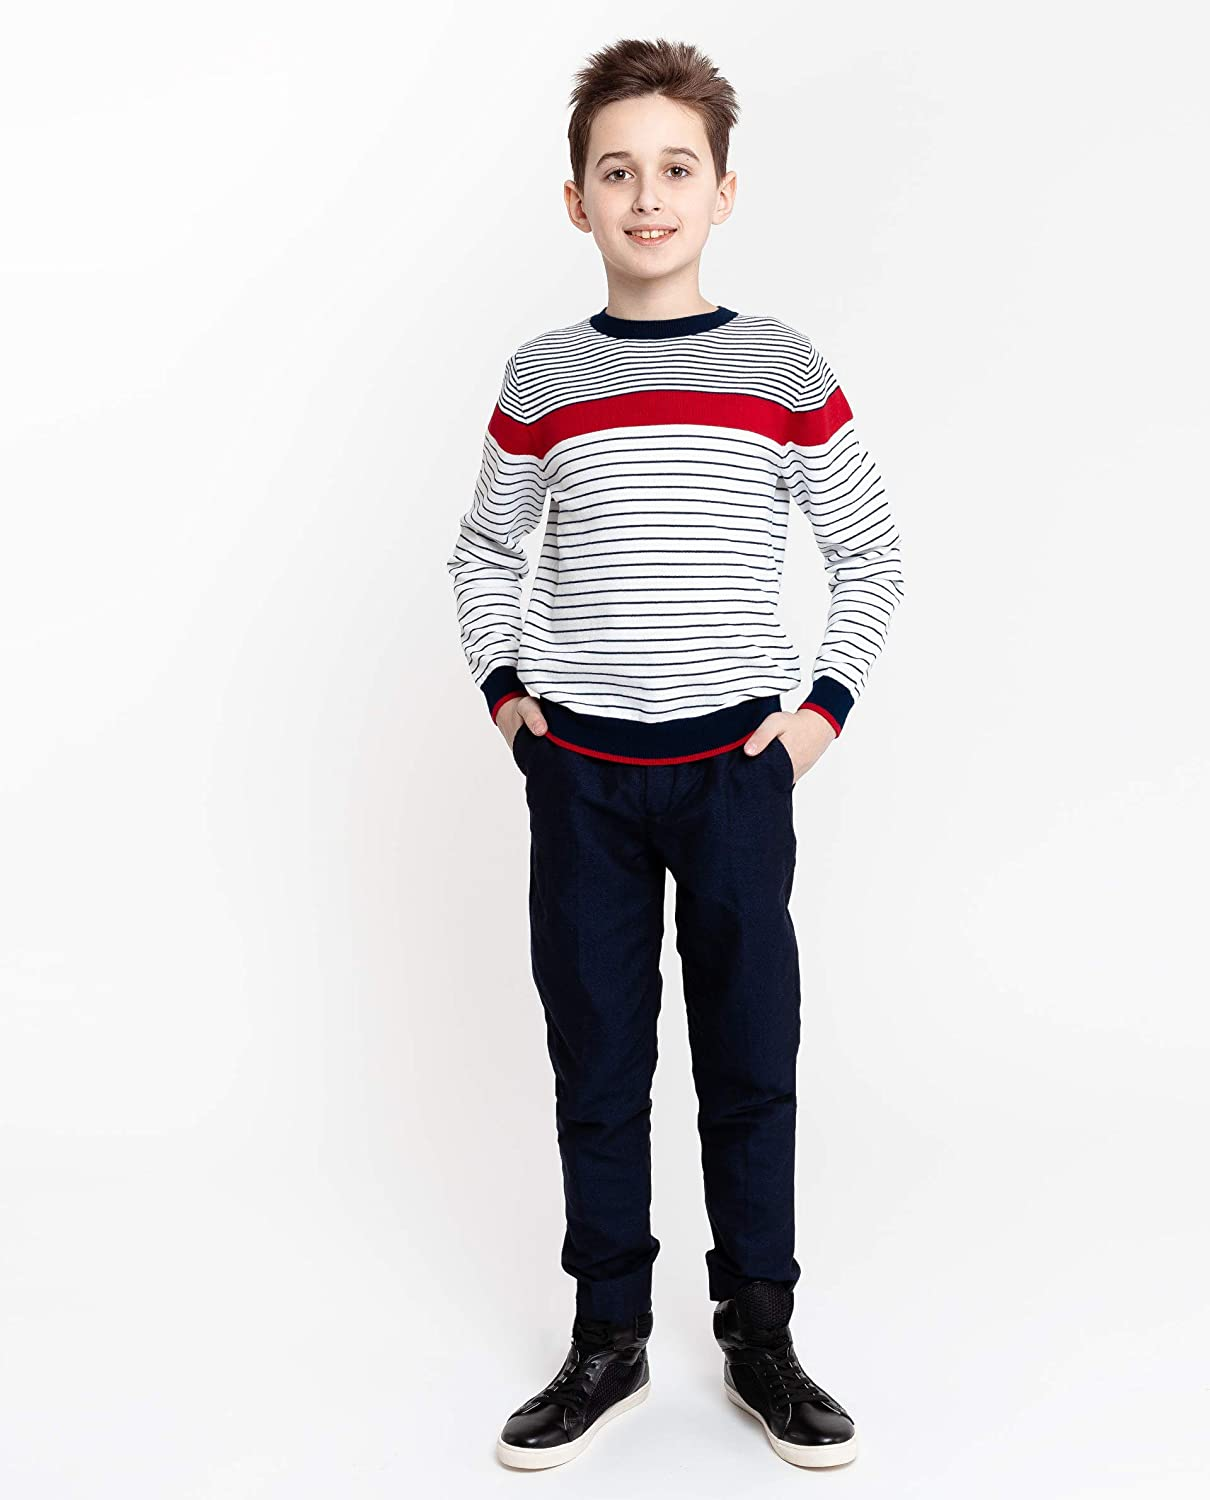 Long Sleeve Regular Fit Round Neck Knitwear Colour White with Navy Blue Red Stripes Cotton for 8-13 Years Casual GULLIVER Teen Boy Sweater